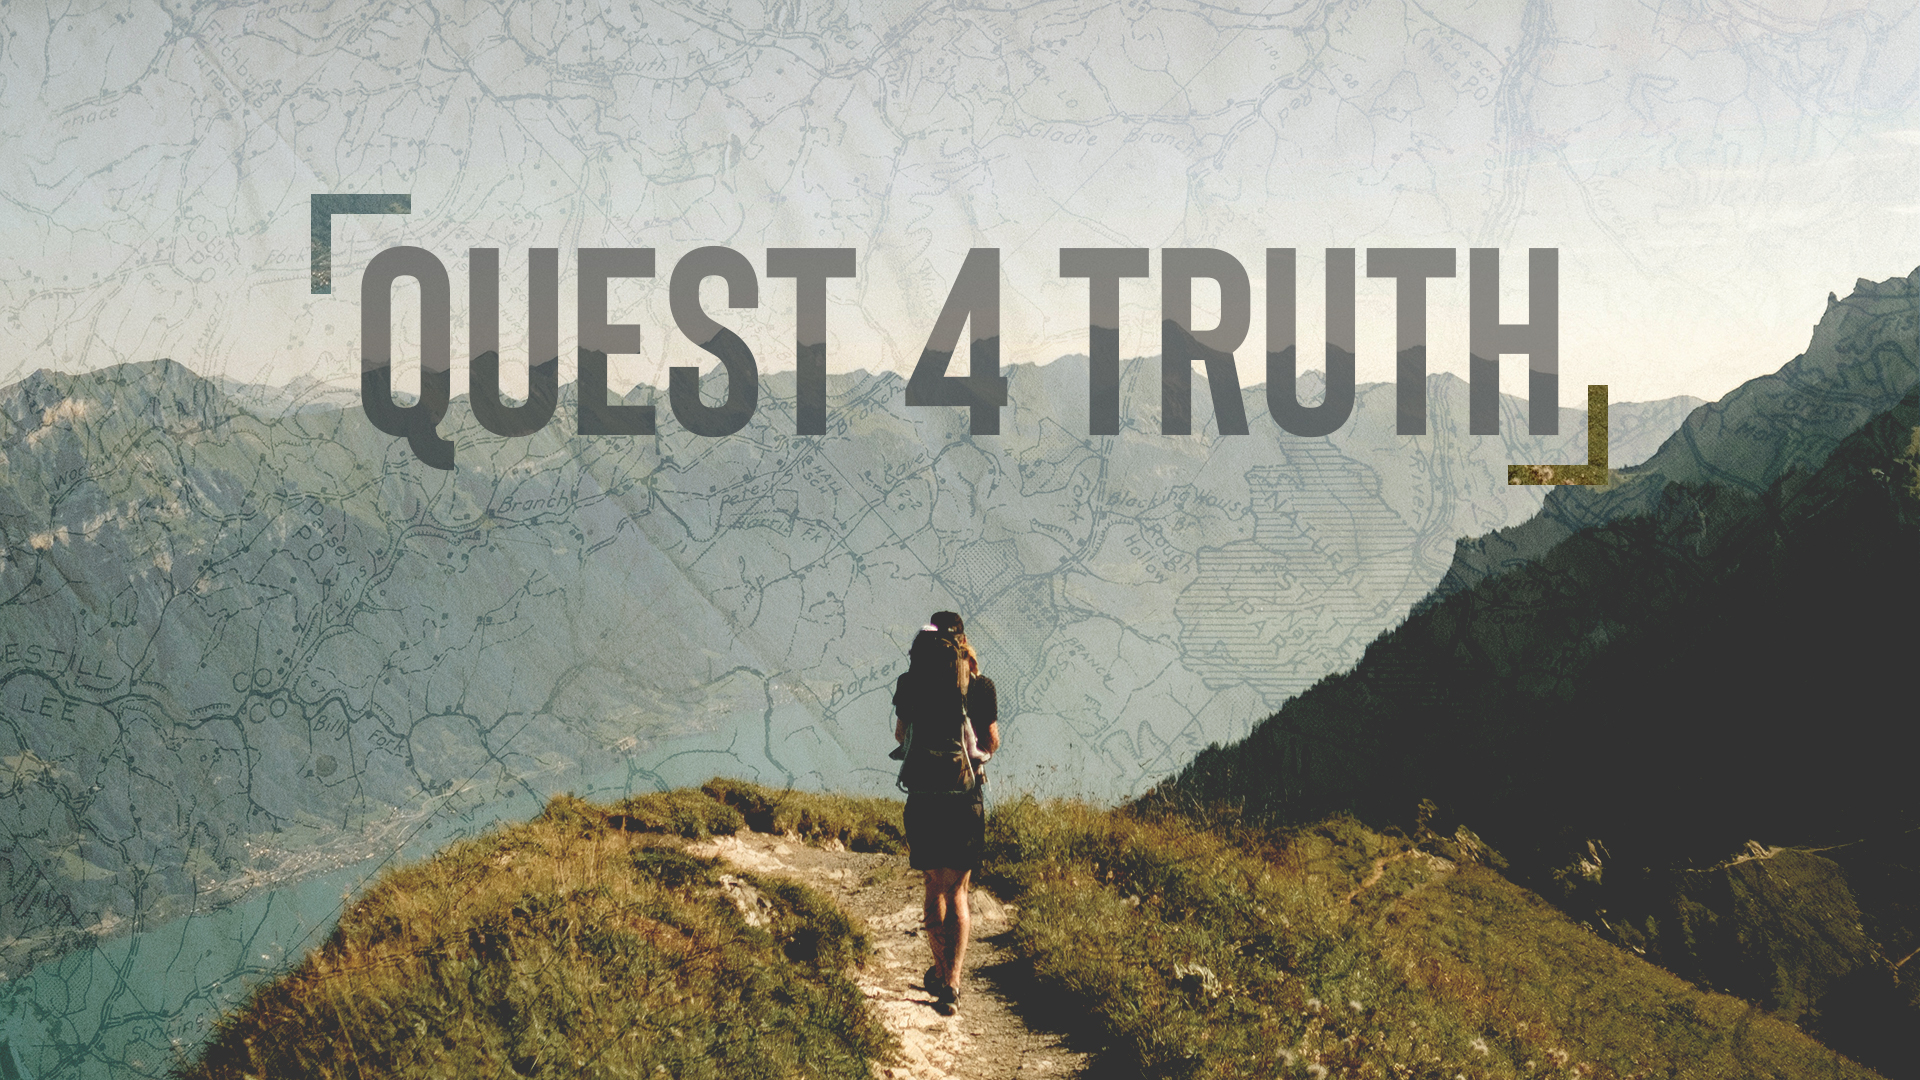 Quest4Truth